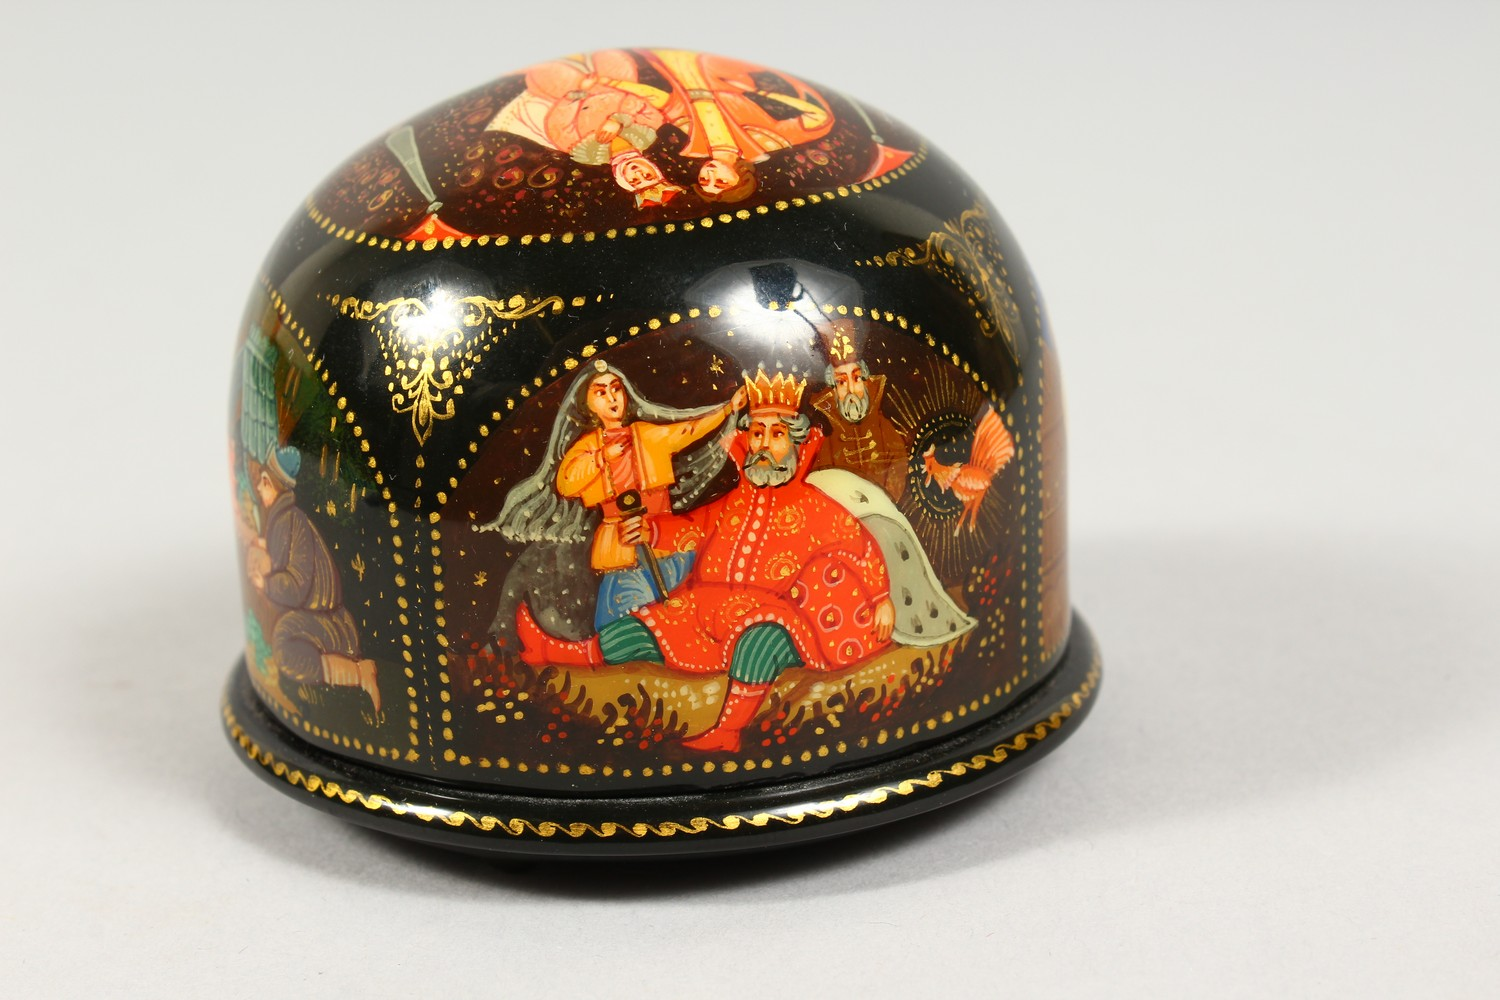 TWO SMALL RUSSIAN CIRCULAR BLACK PAPIER MACHE BOXES AND COVERS. 2.5ins diameter. - Image 9 of 12